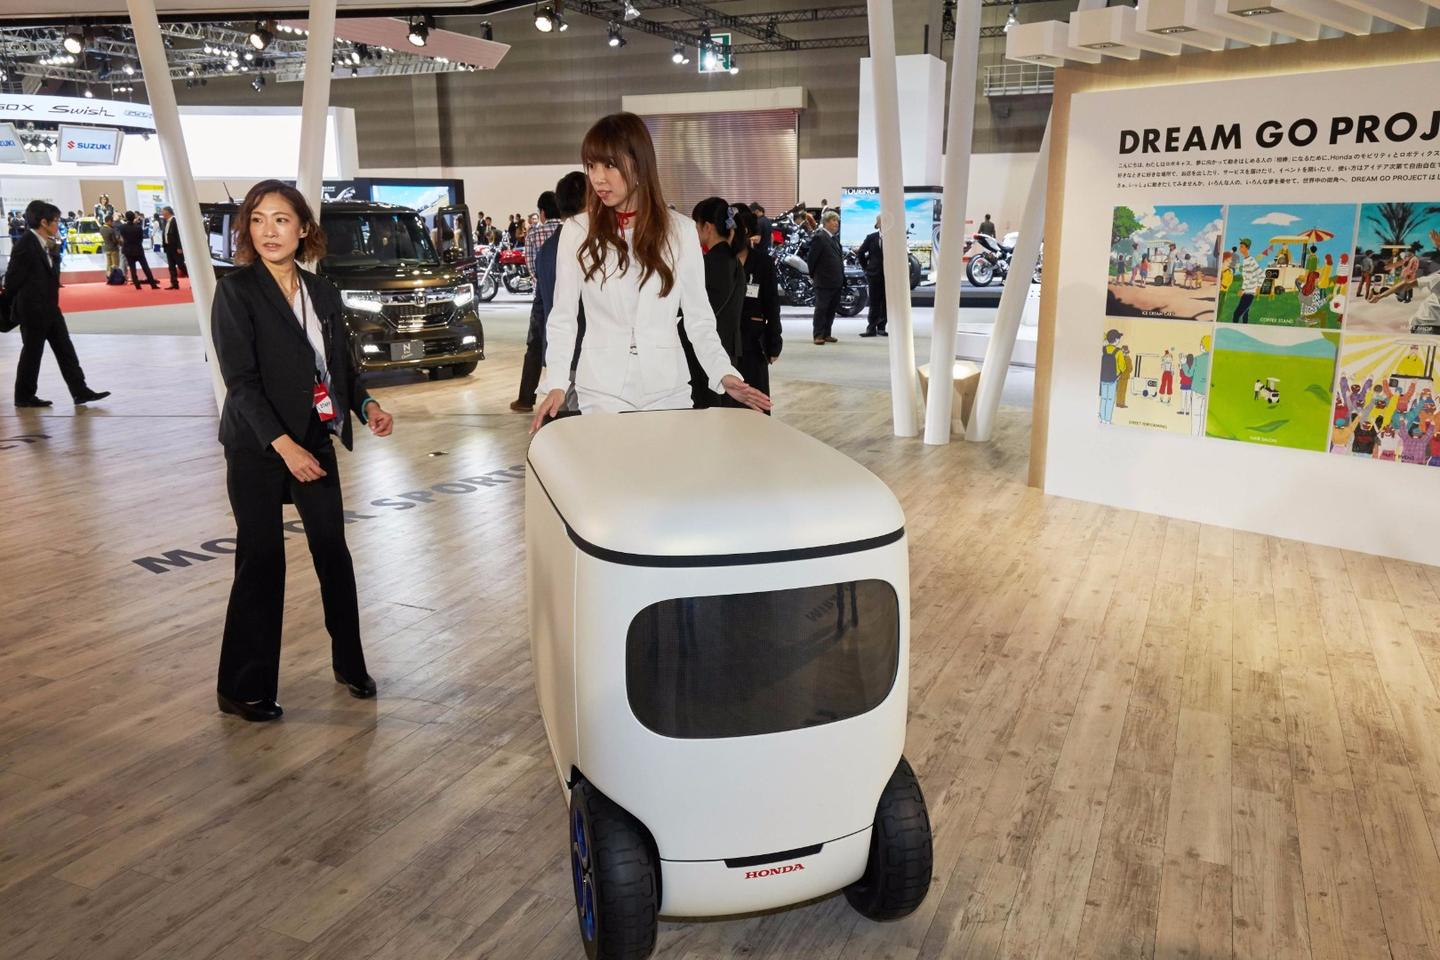 An odd twist on urban transport, Honda's RoboCas is a robot, auto-follow cargo trailer, urban transporter and vending stand all in one